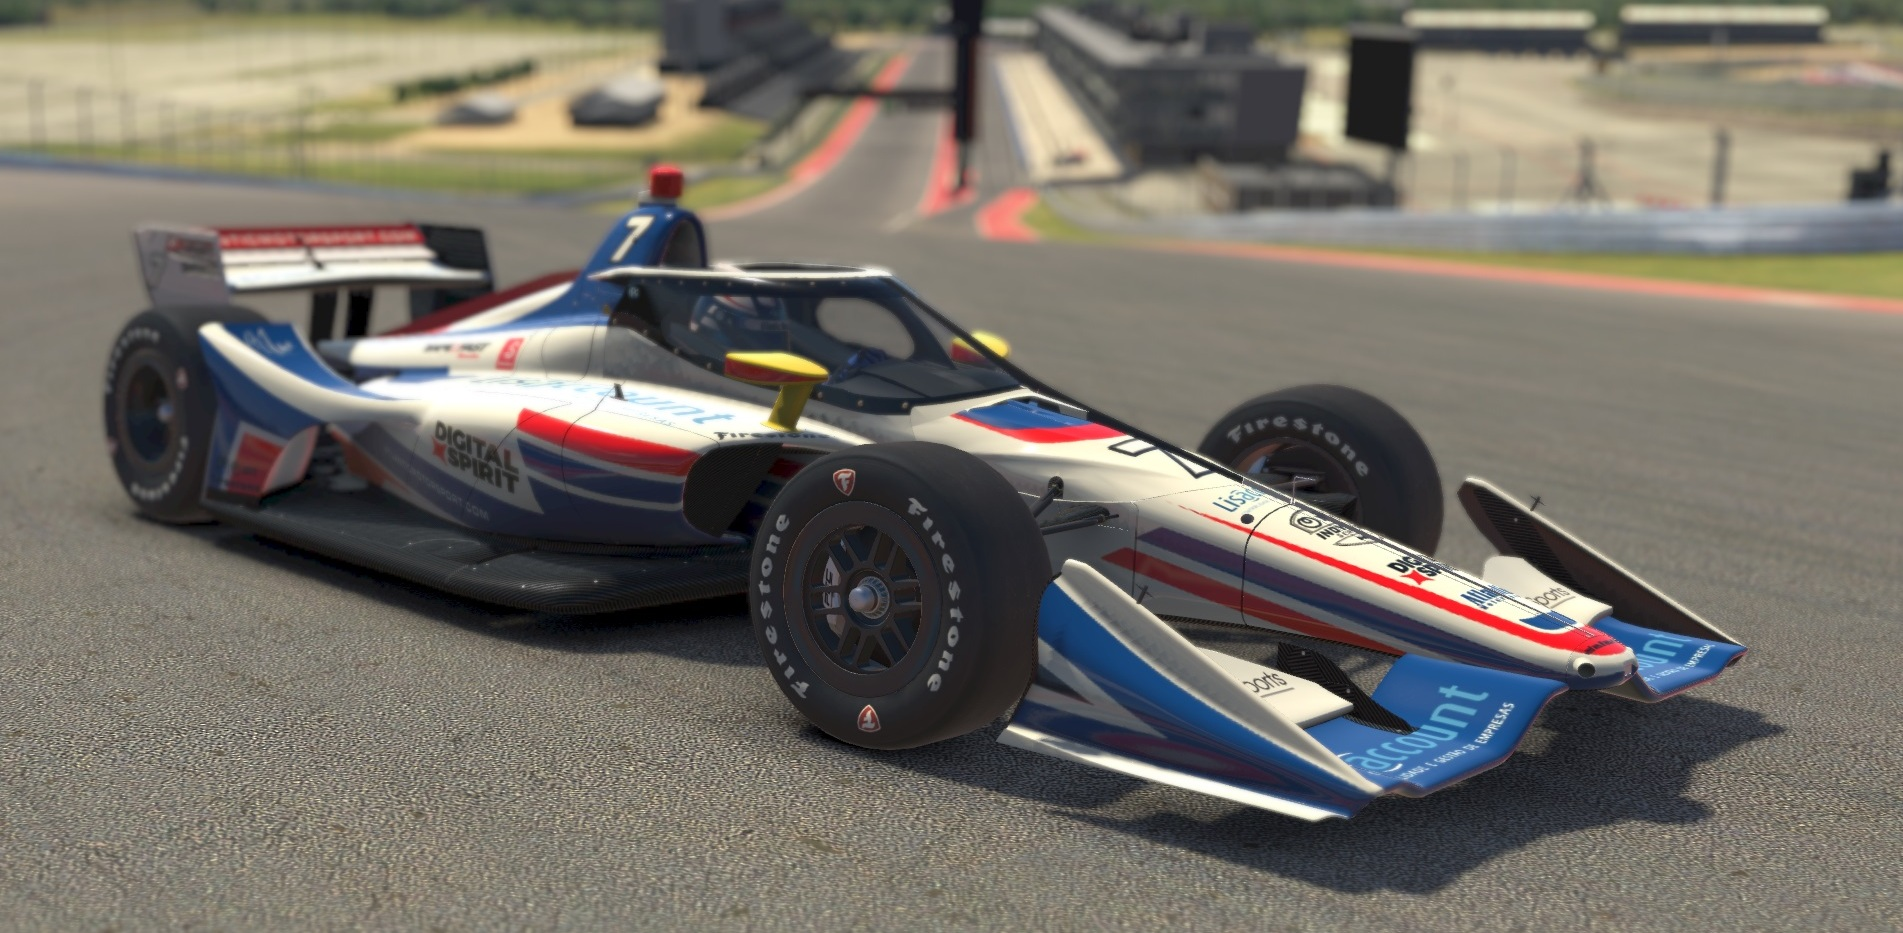 Atlantic Motorsport presents the new INDYCAR Dallara IR 18/2020 for iRacing